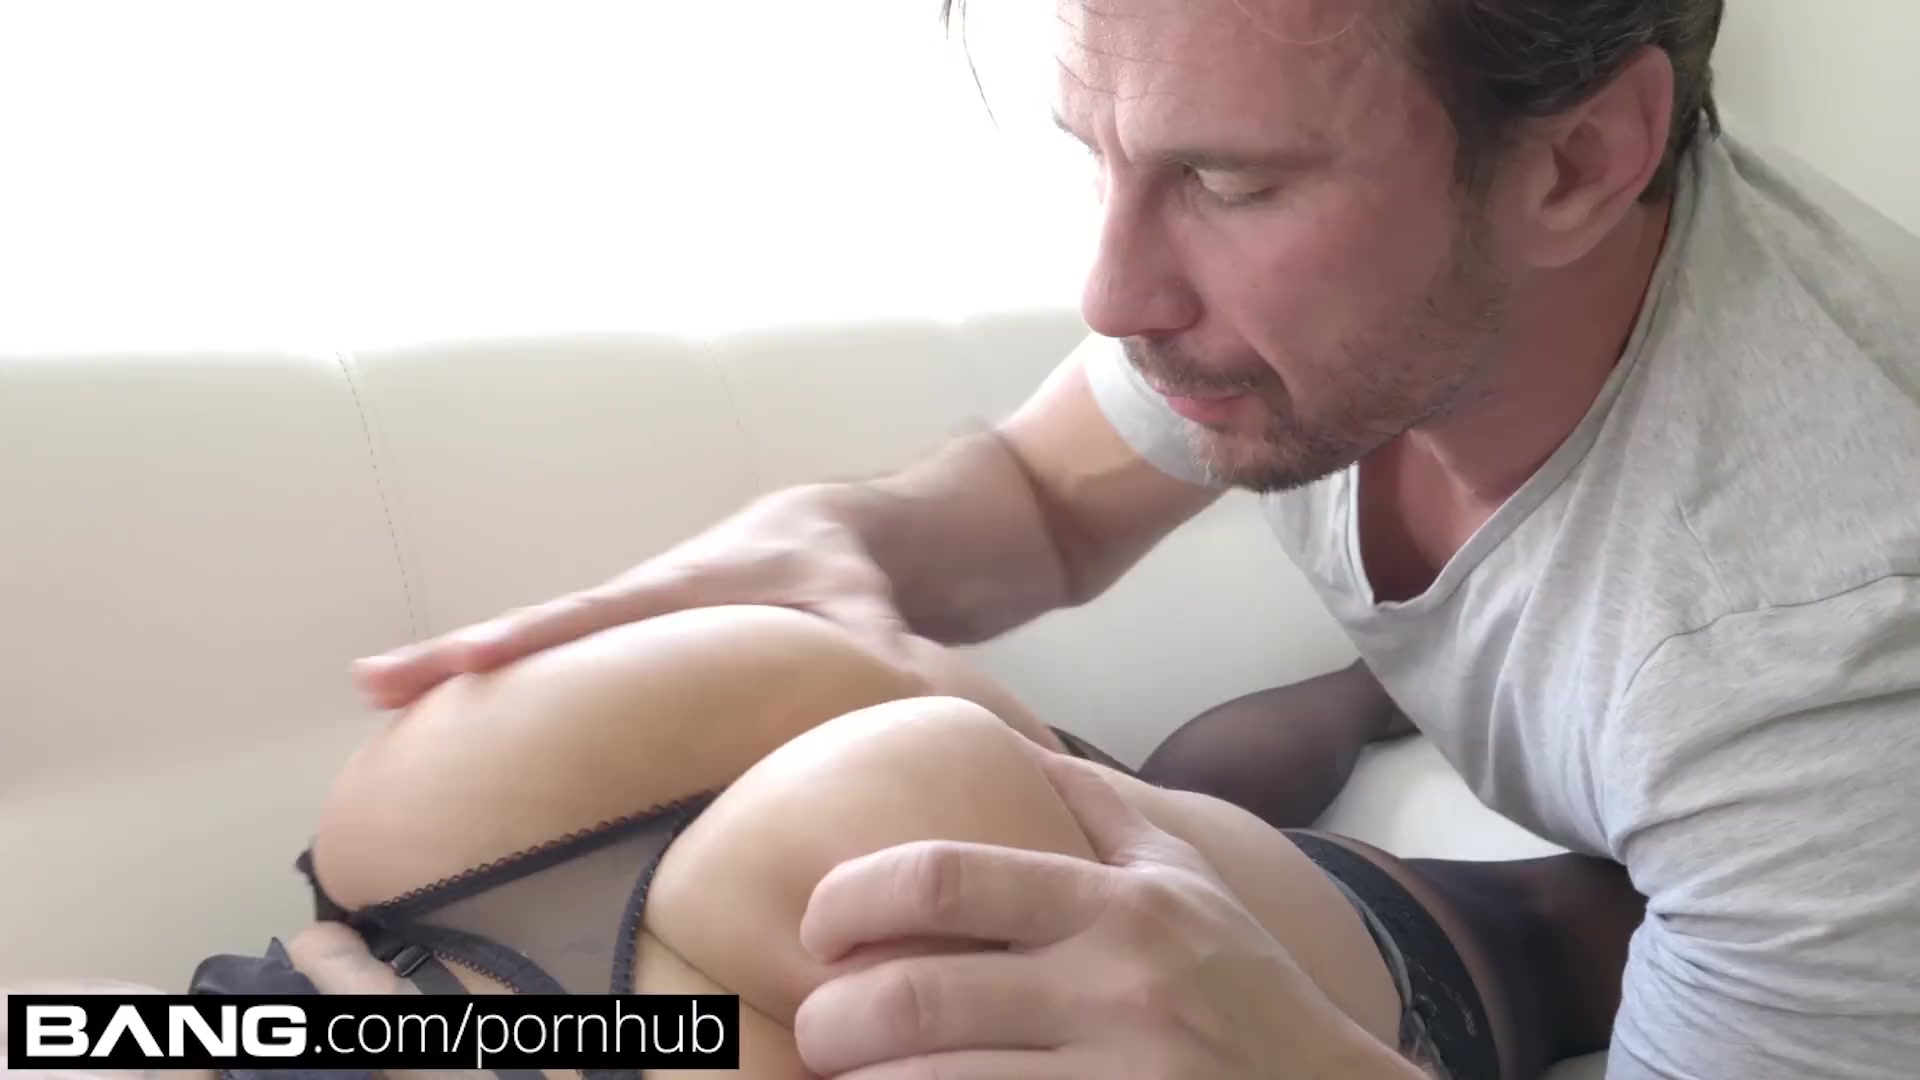 Preview 2 of Bang Gonzo: Tattooed Vixen Nina Kayy Gets Her Asshole Stretched